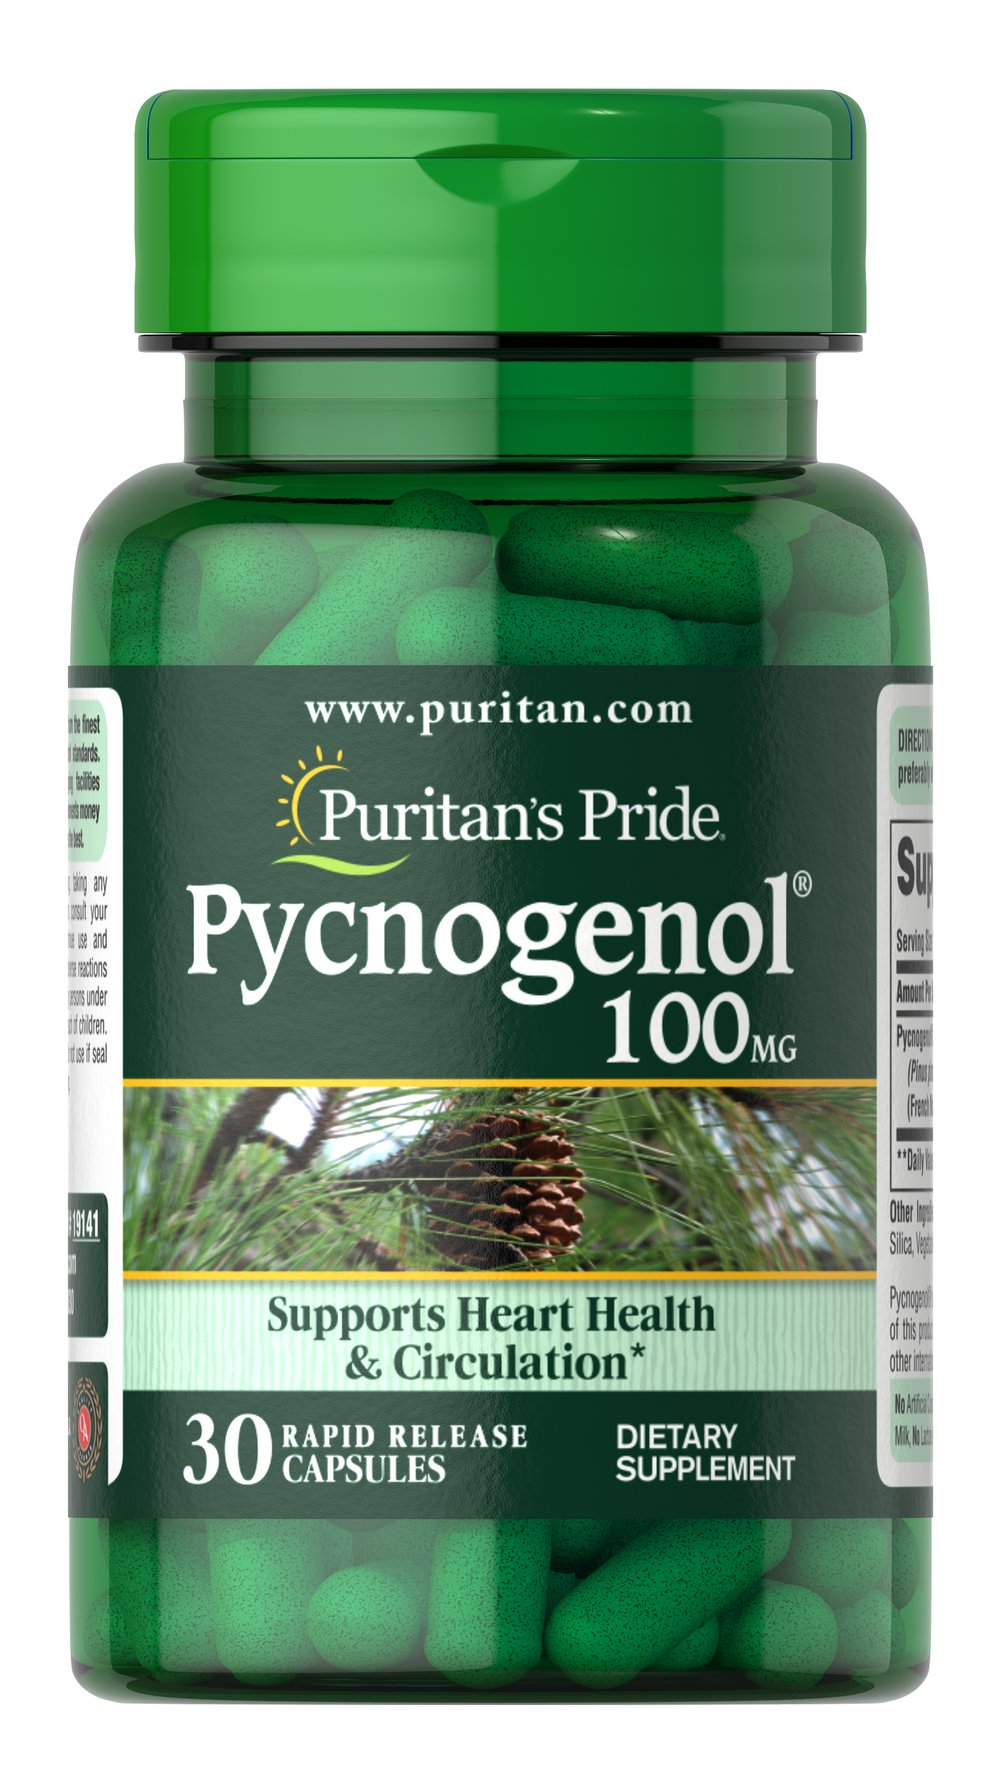 Pycnogenol® 100 mg <p>Provides powerful antioxidant support**</p><p>Supports healthy circulation and contributes to heart function**</p><p>May help with the occasional discomforts of PMS**</p><p>Aids with maintaining healthy skin**</p><p>Assists with eye health**</p><p>Helps maintain glucose levels already within a normal range**</p>  30 Capsules 100 mg $60.99